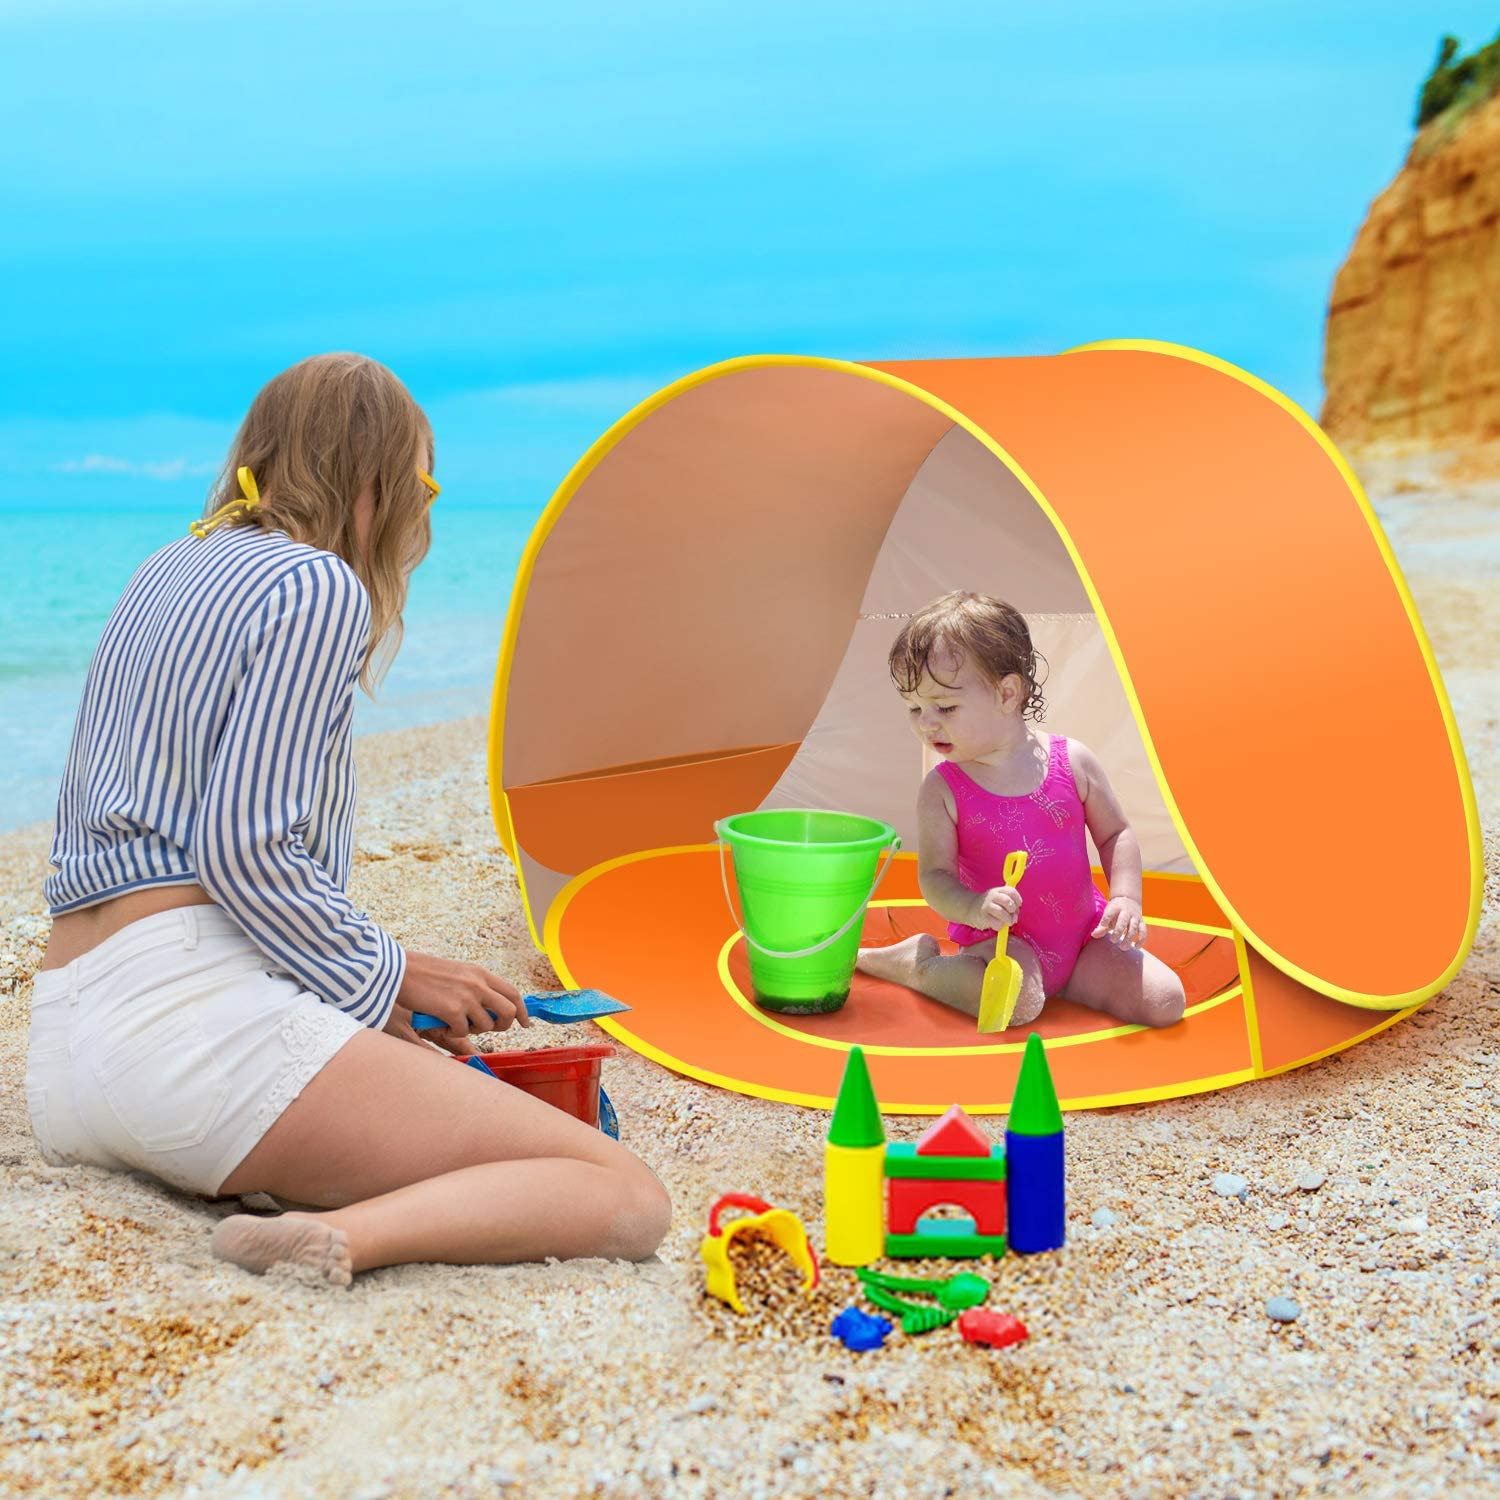 Carry Bag and Detachable Shade for Toddler CeeKii Baby Beach Tent Pop Up Tent Portable Shade Tent UV Protection Sun Shelter with Mini Pool 50+ UPF Infant /& Kids